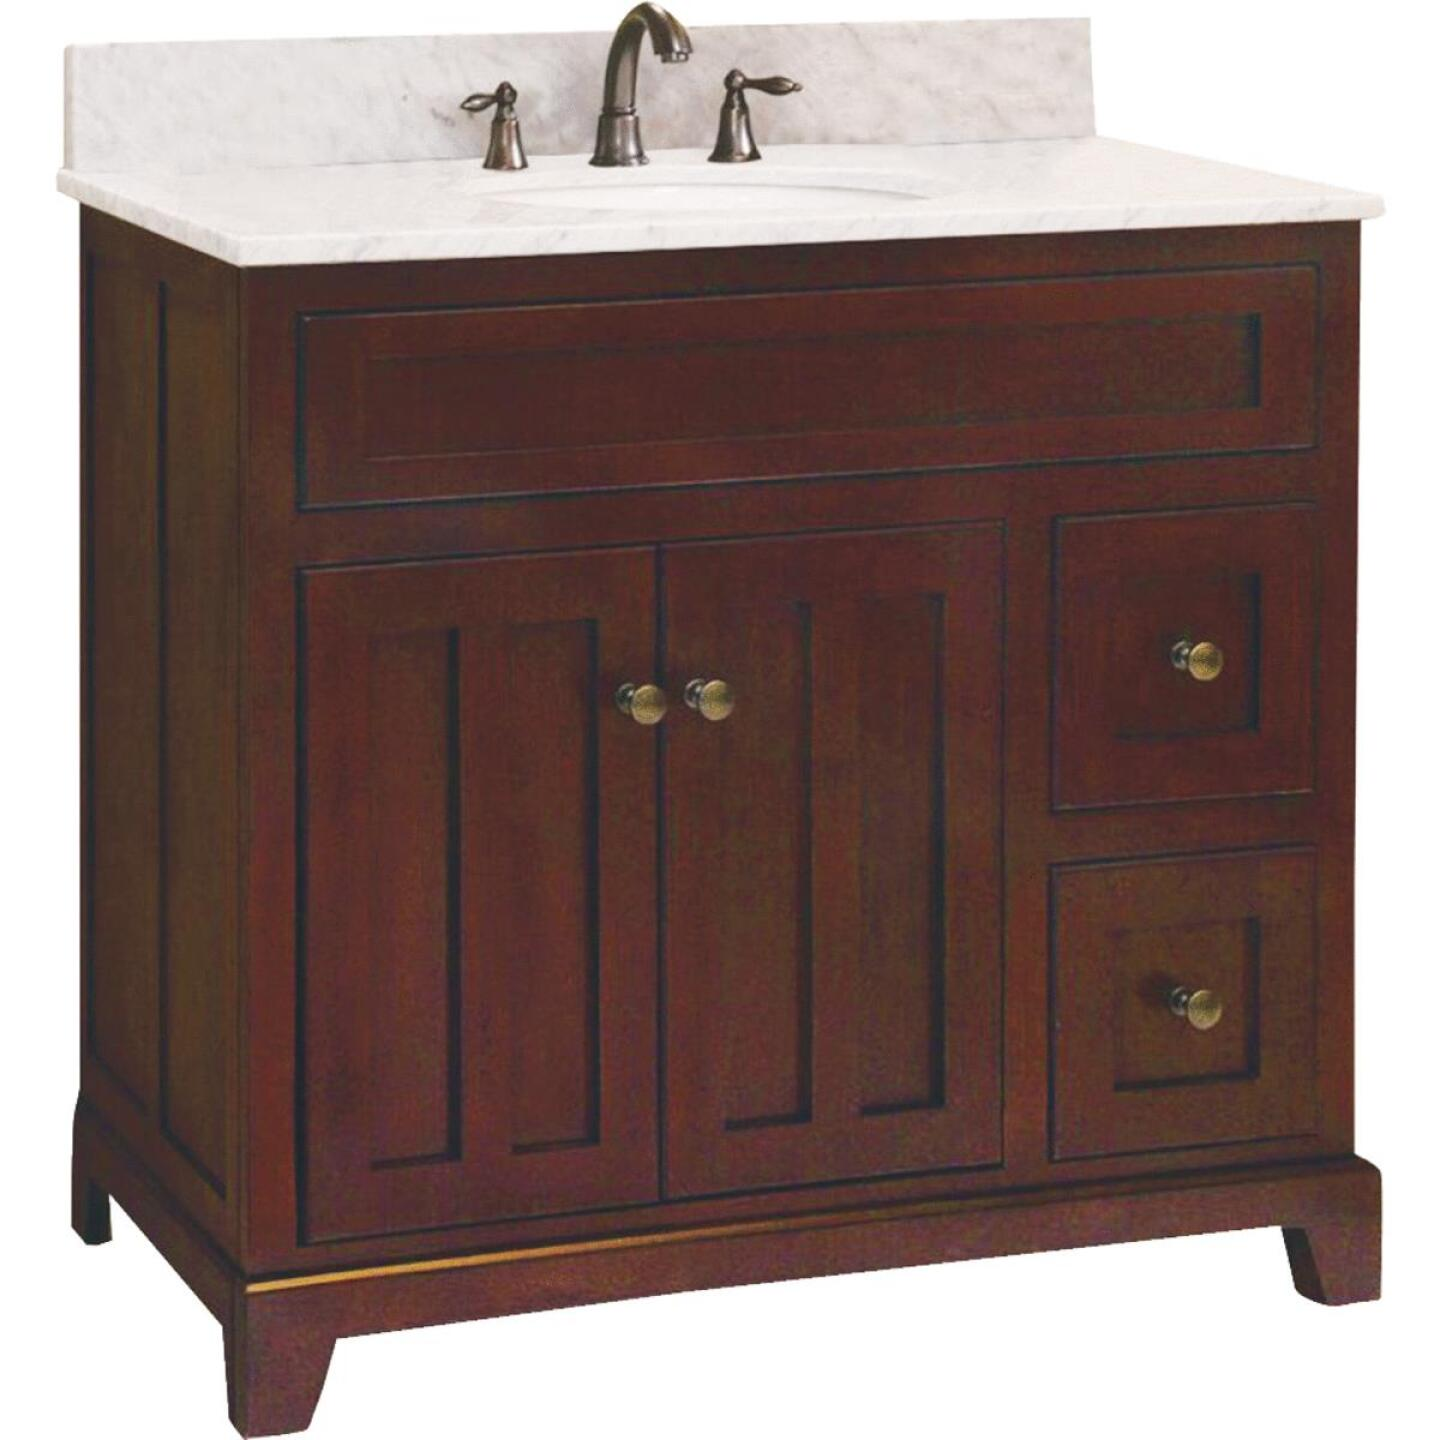 Sunny Wood Grand Haven Cherry 36 In. W x 34 In. H x 21 In. D Vanity Base, 2 Door/2 Drawer Image 1